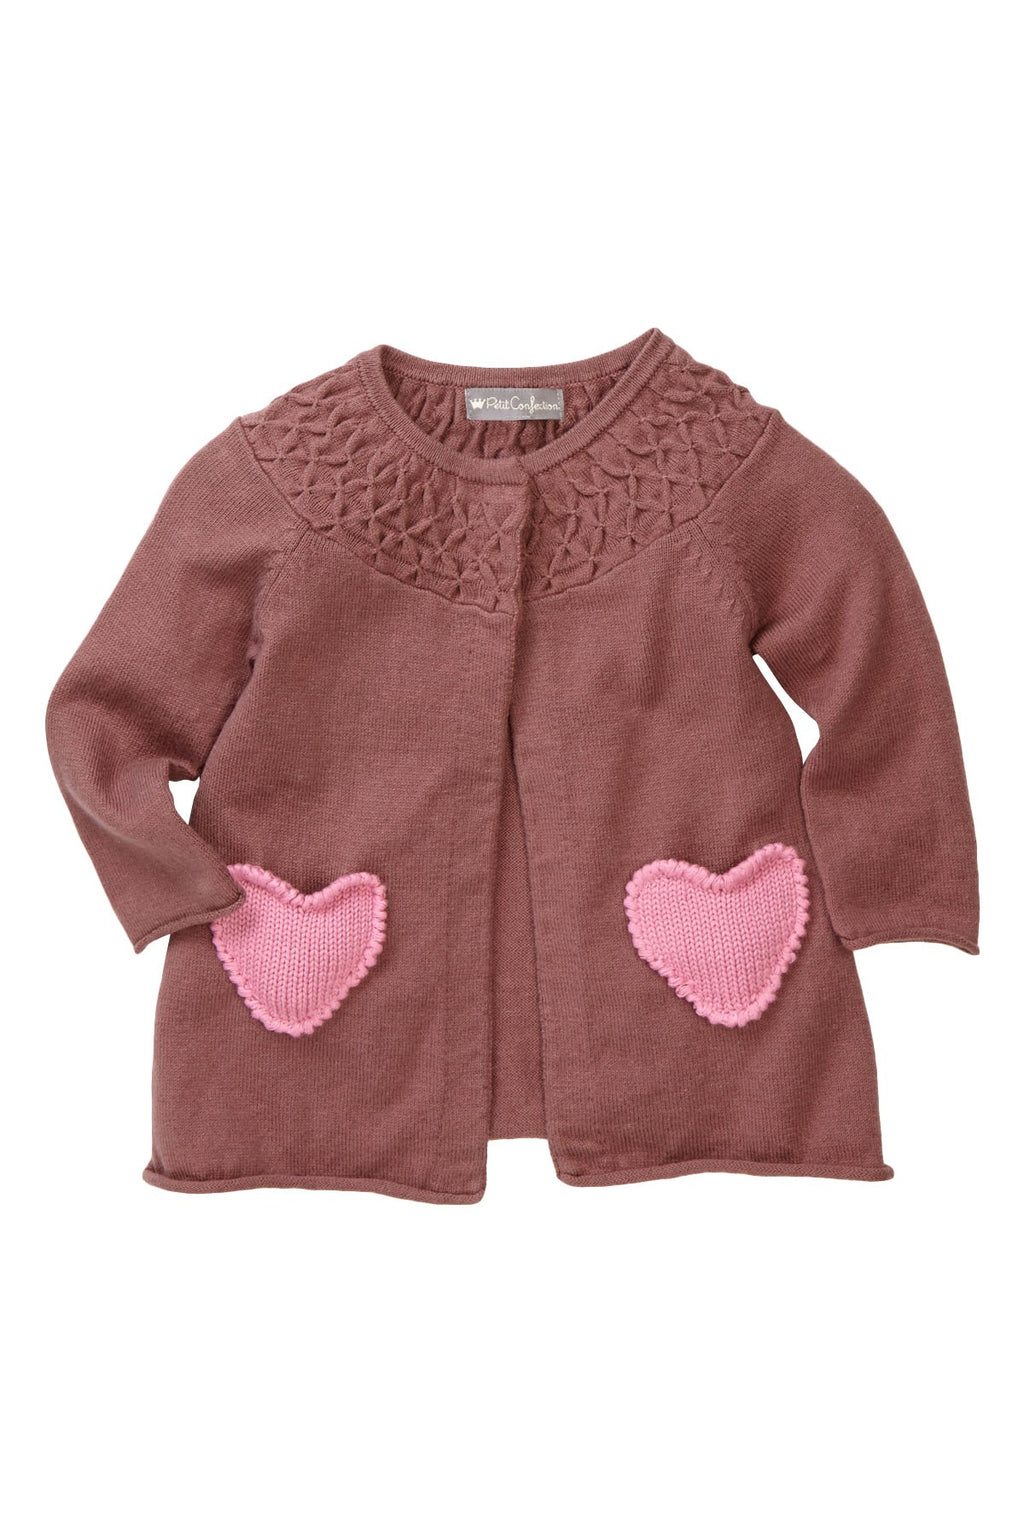 Taupe Hearts Pocket Cardigan - Petit Confection